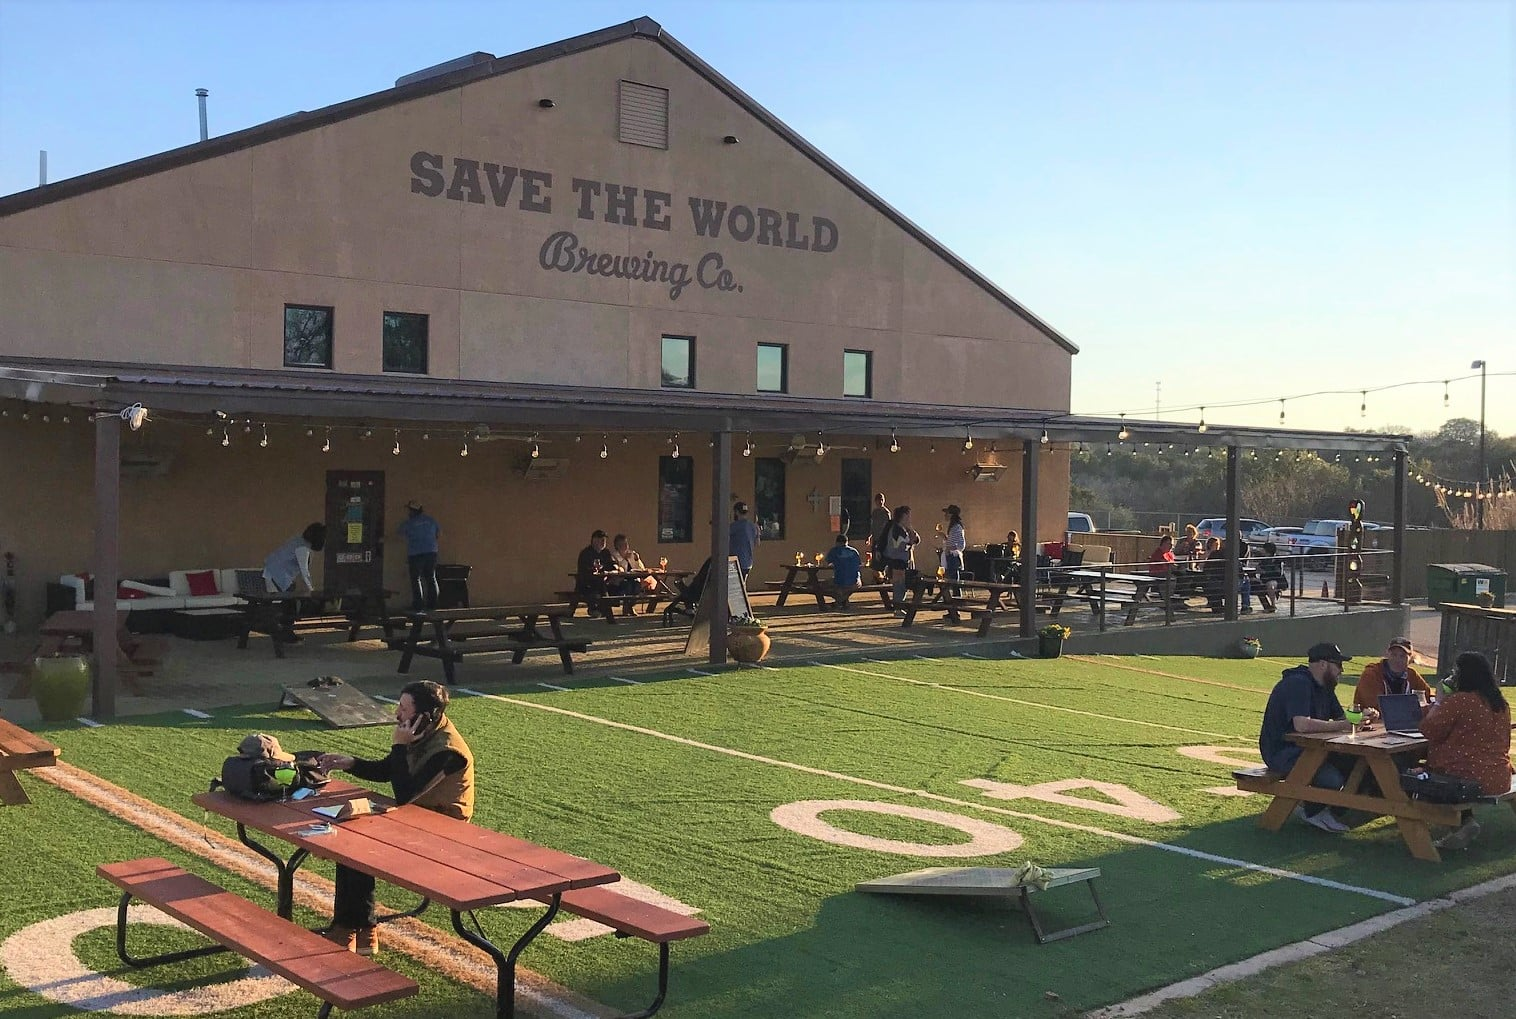 Save the World Brewing Co.